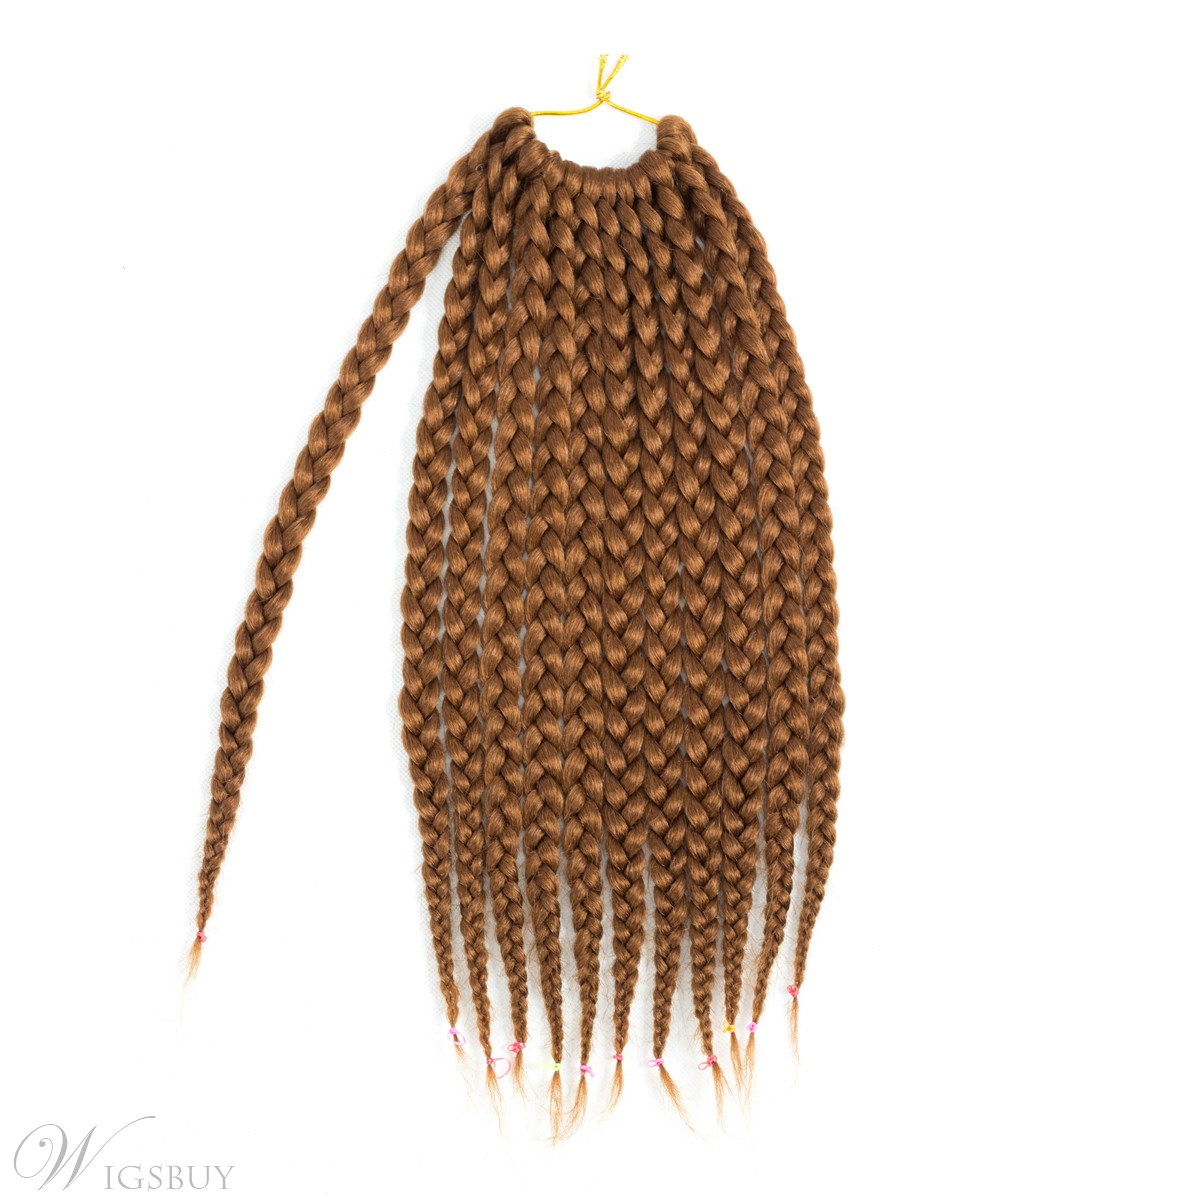 Braiding Hair Extensions Synthetic Crochet Twist Box Braids Hair Weaving 14 Inches/pcs